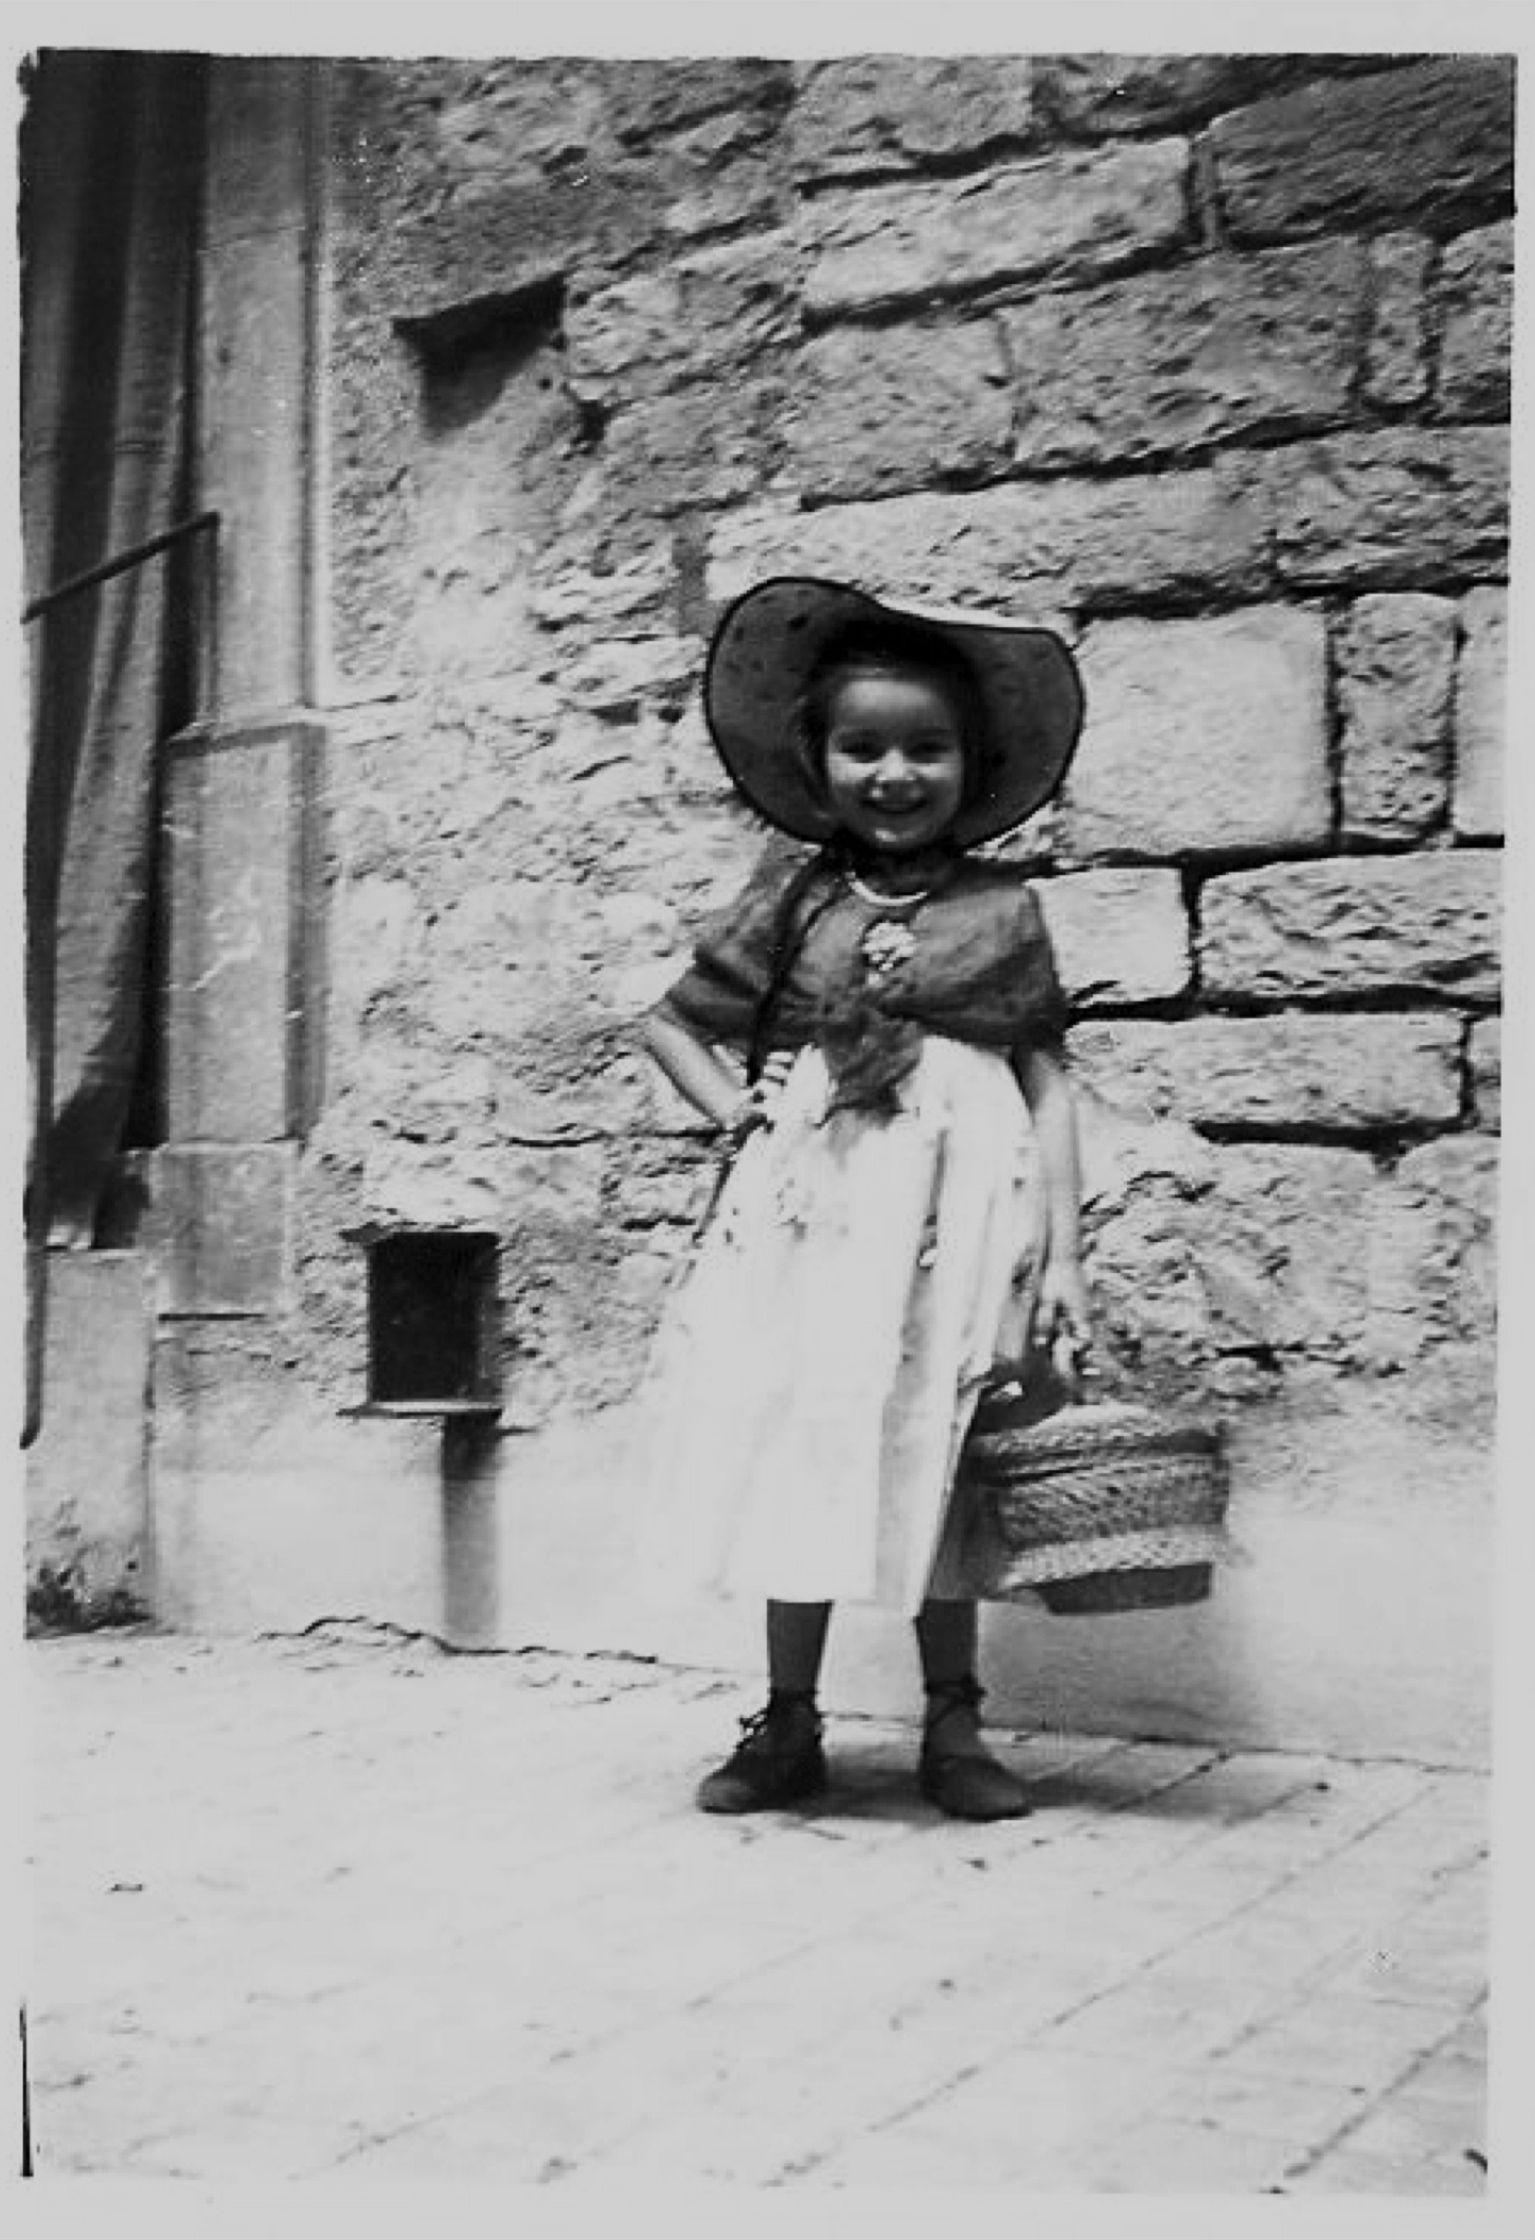 One of Galatée's favorite photos. The little girl dressed for harvest. She is now 50 years and makes wonderful wines.